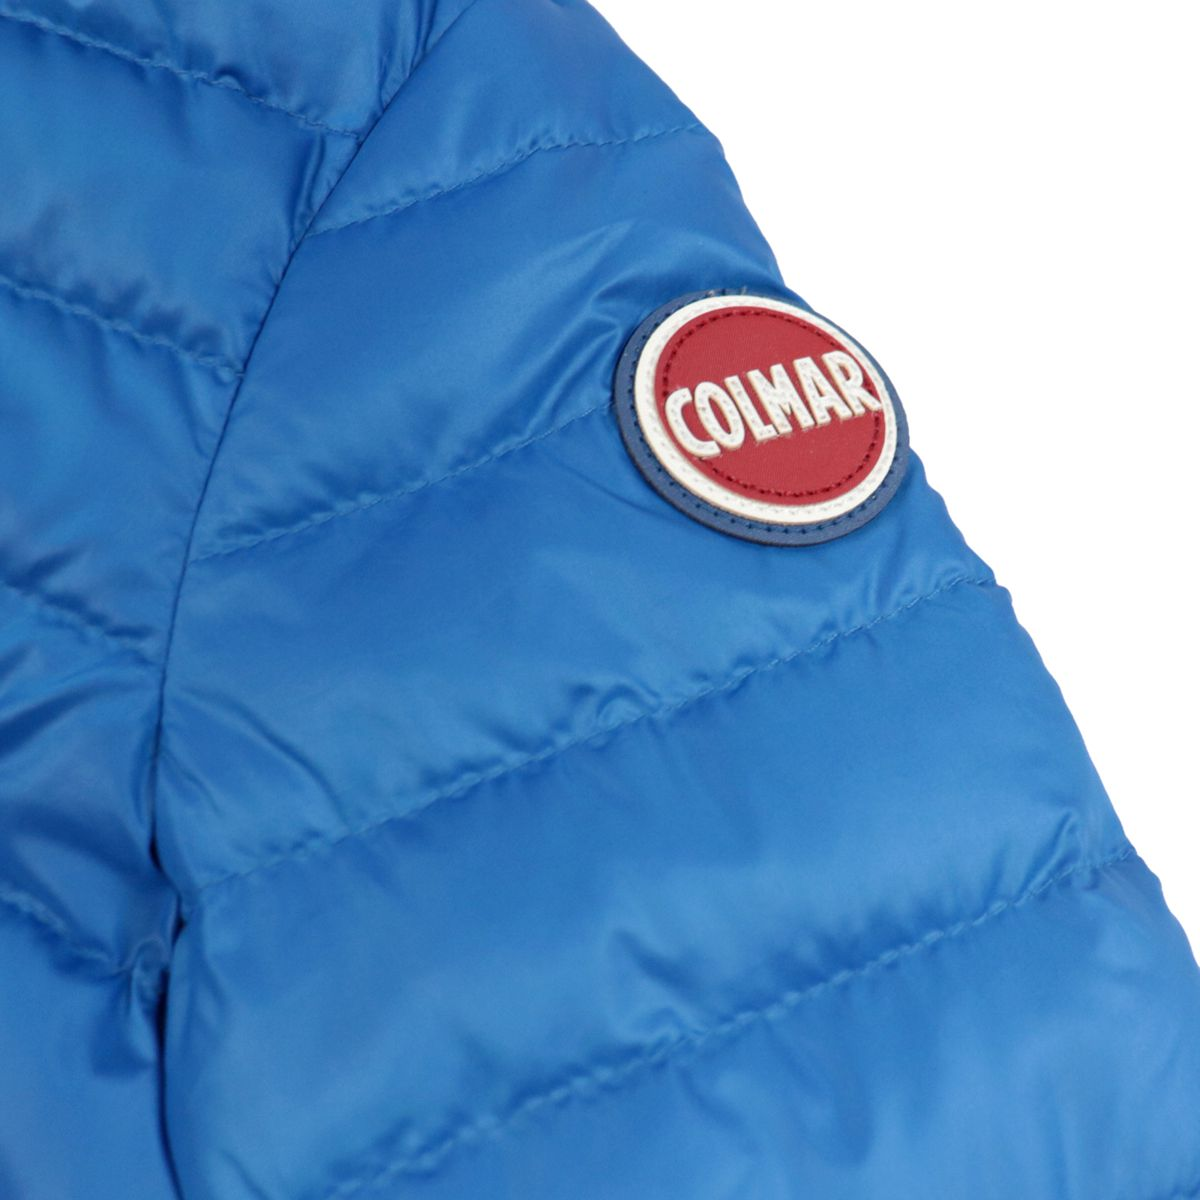 Ultralight semi-opaque nylon down jacket with hood Bluette Colmar